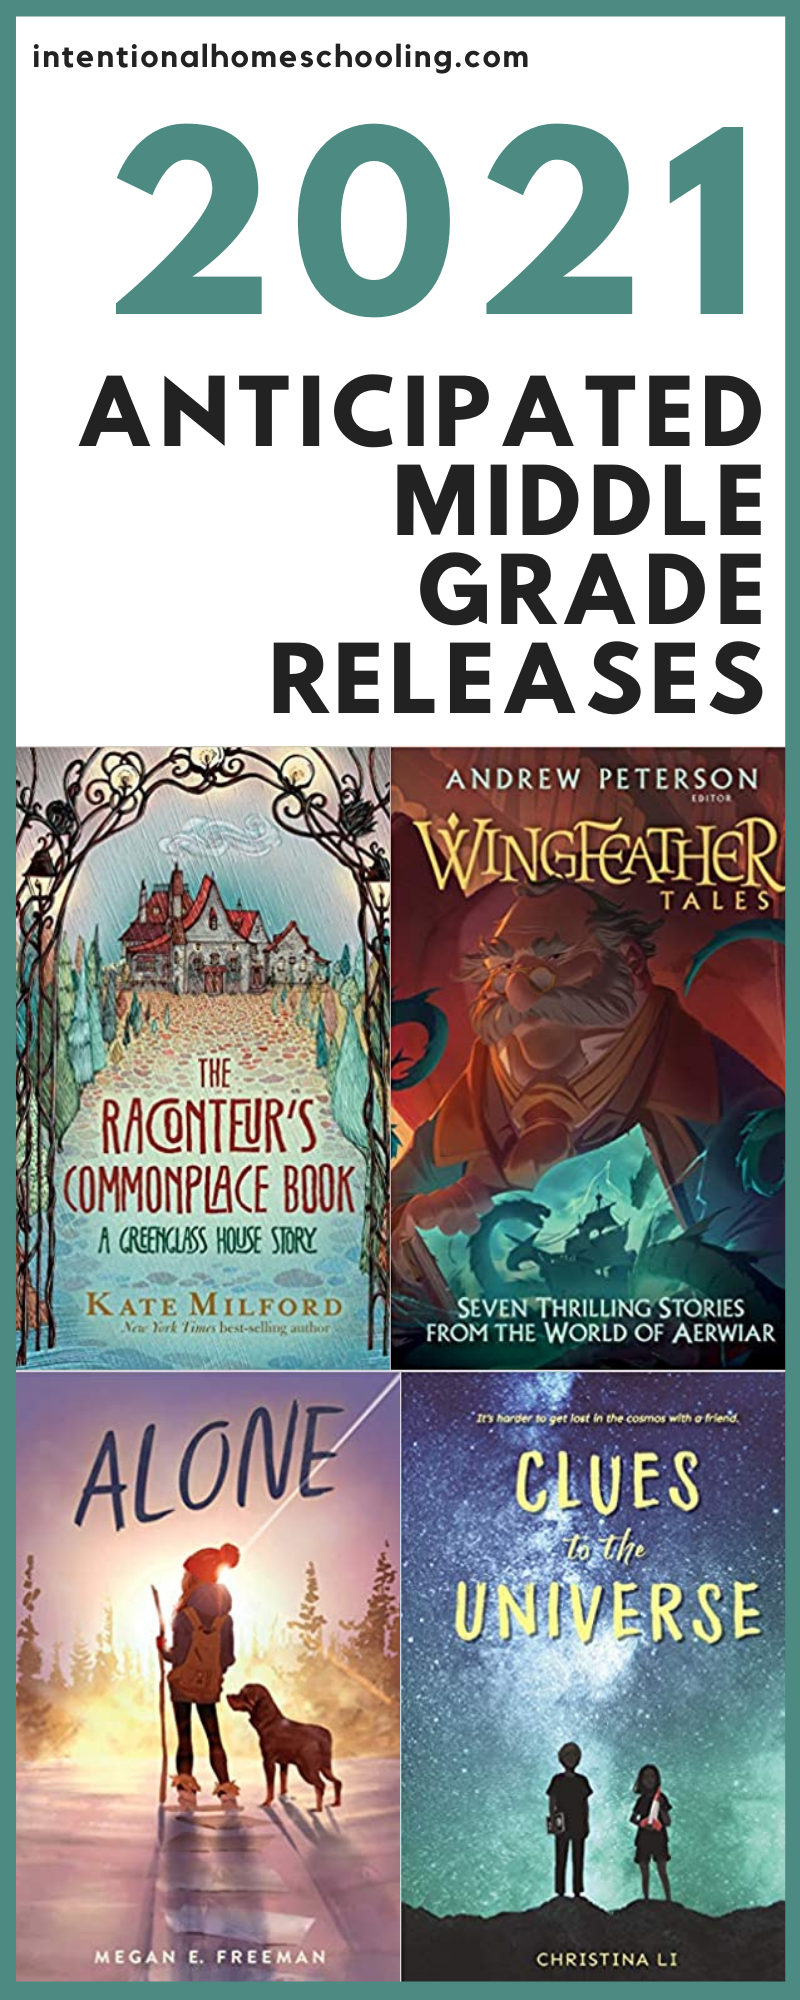 Middle Grade Books Coming Out in 2021 That I'm Looking Forward to! Middle Grade Anticipated Releases for January-March - Middle Grade books coming out in January 2021, February 2021 and March 2021